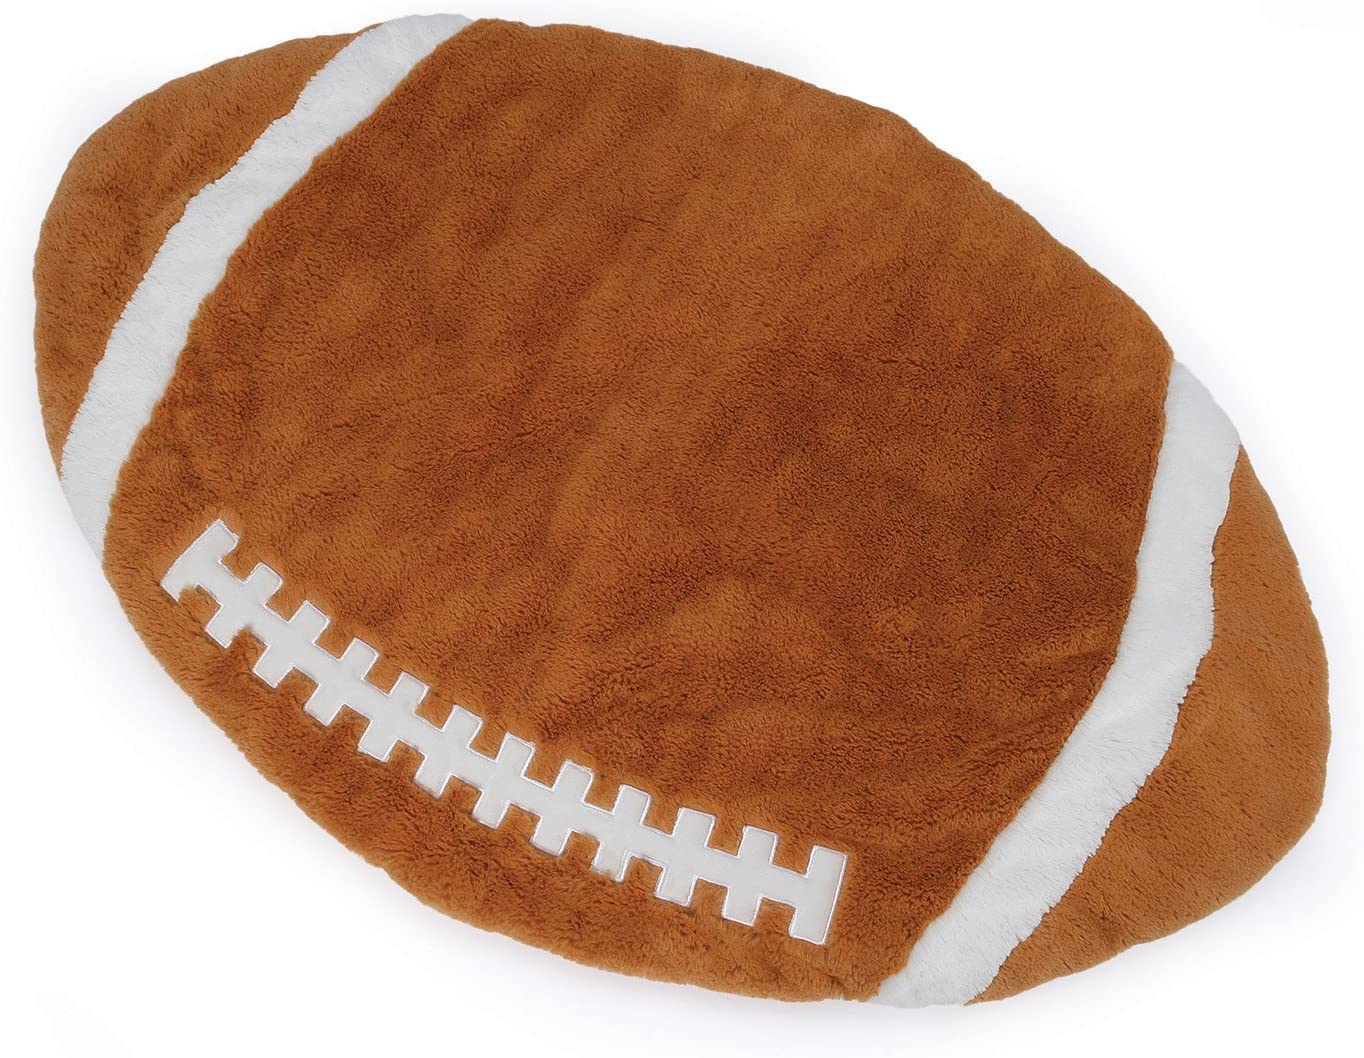 GUND Baby Football Blanket Play Selling Rapid rise and selling Cozy